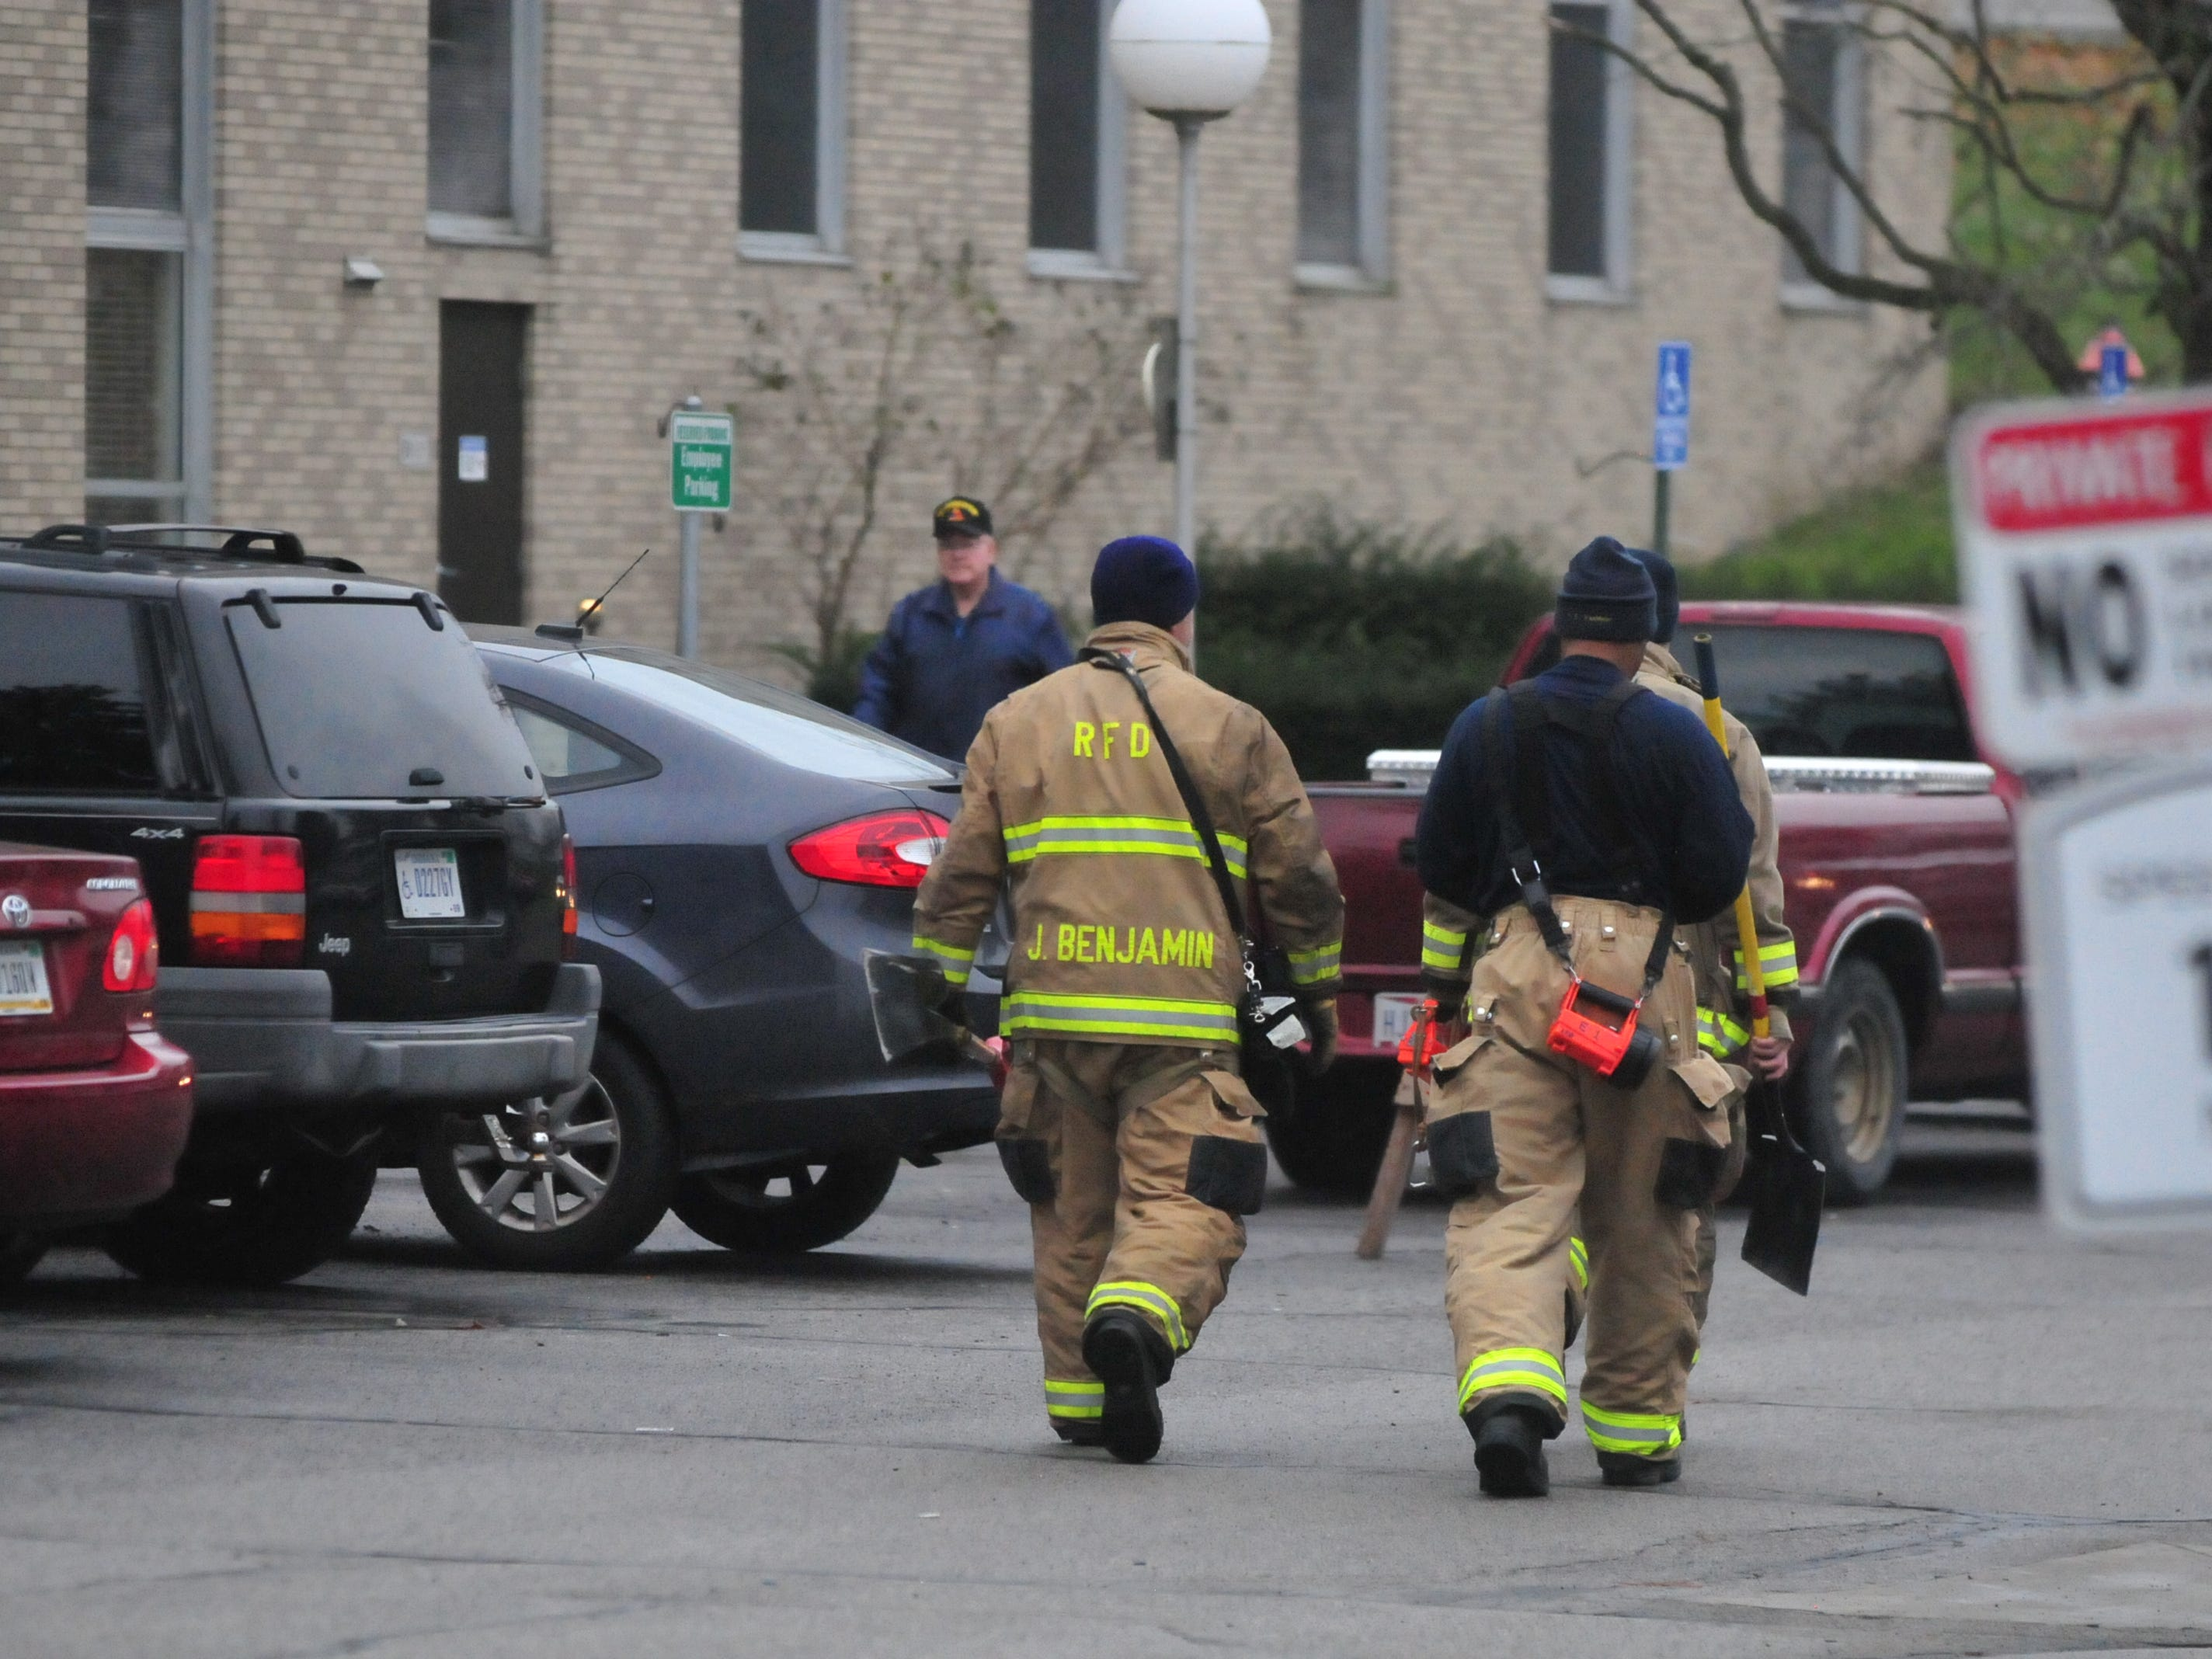 Richmond Fire Department personnel carries equipment into Interfaith Apartments on Tuesday morning to assist the investigation into Monday night's fire.